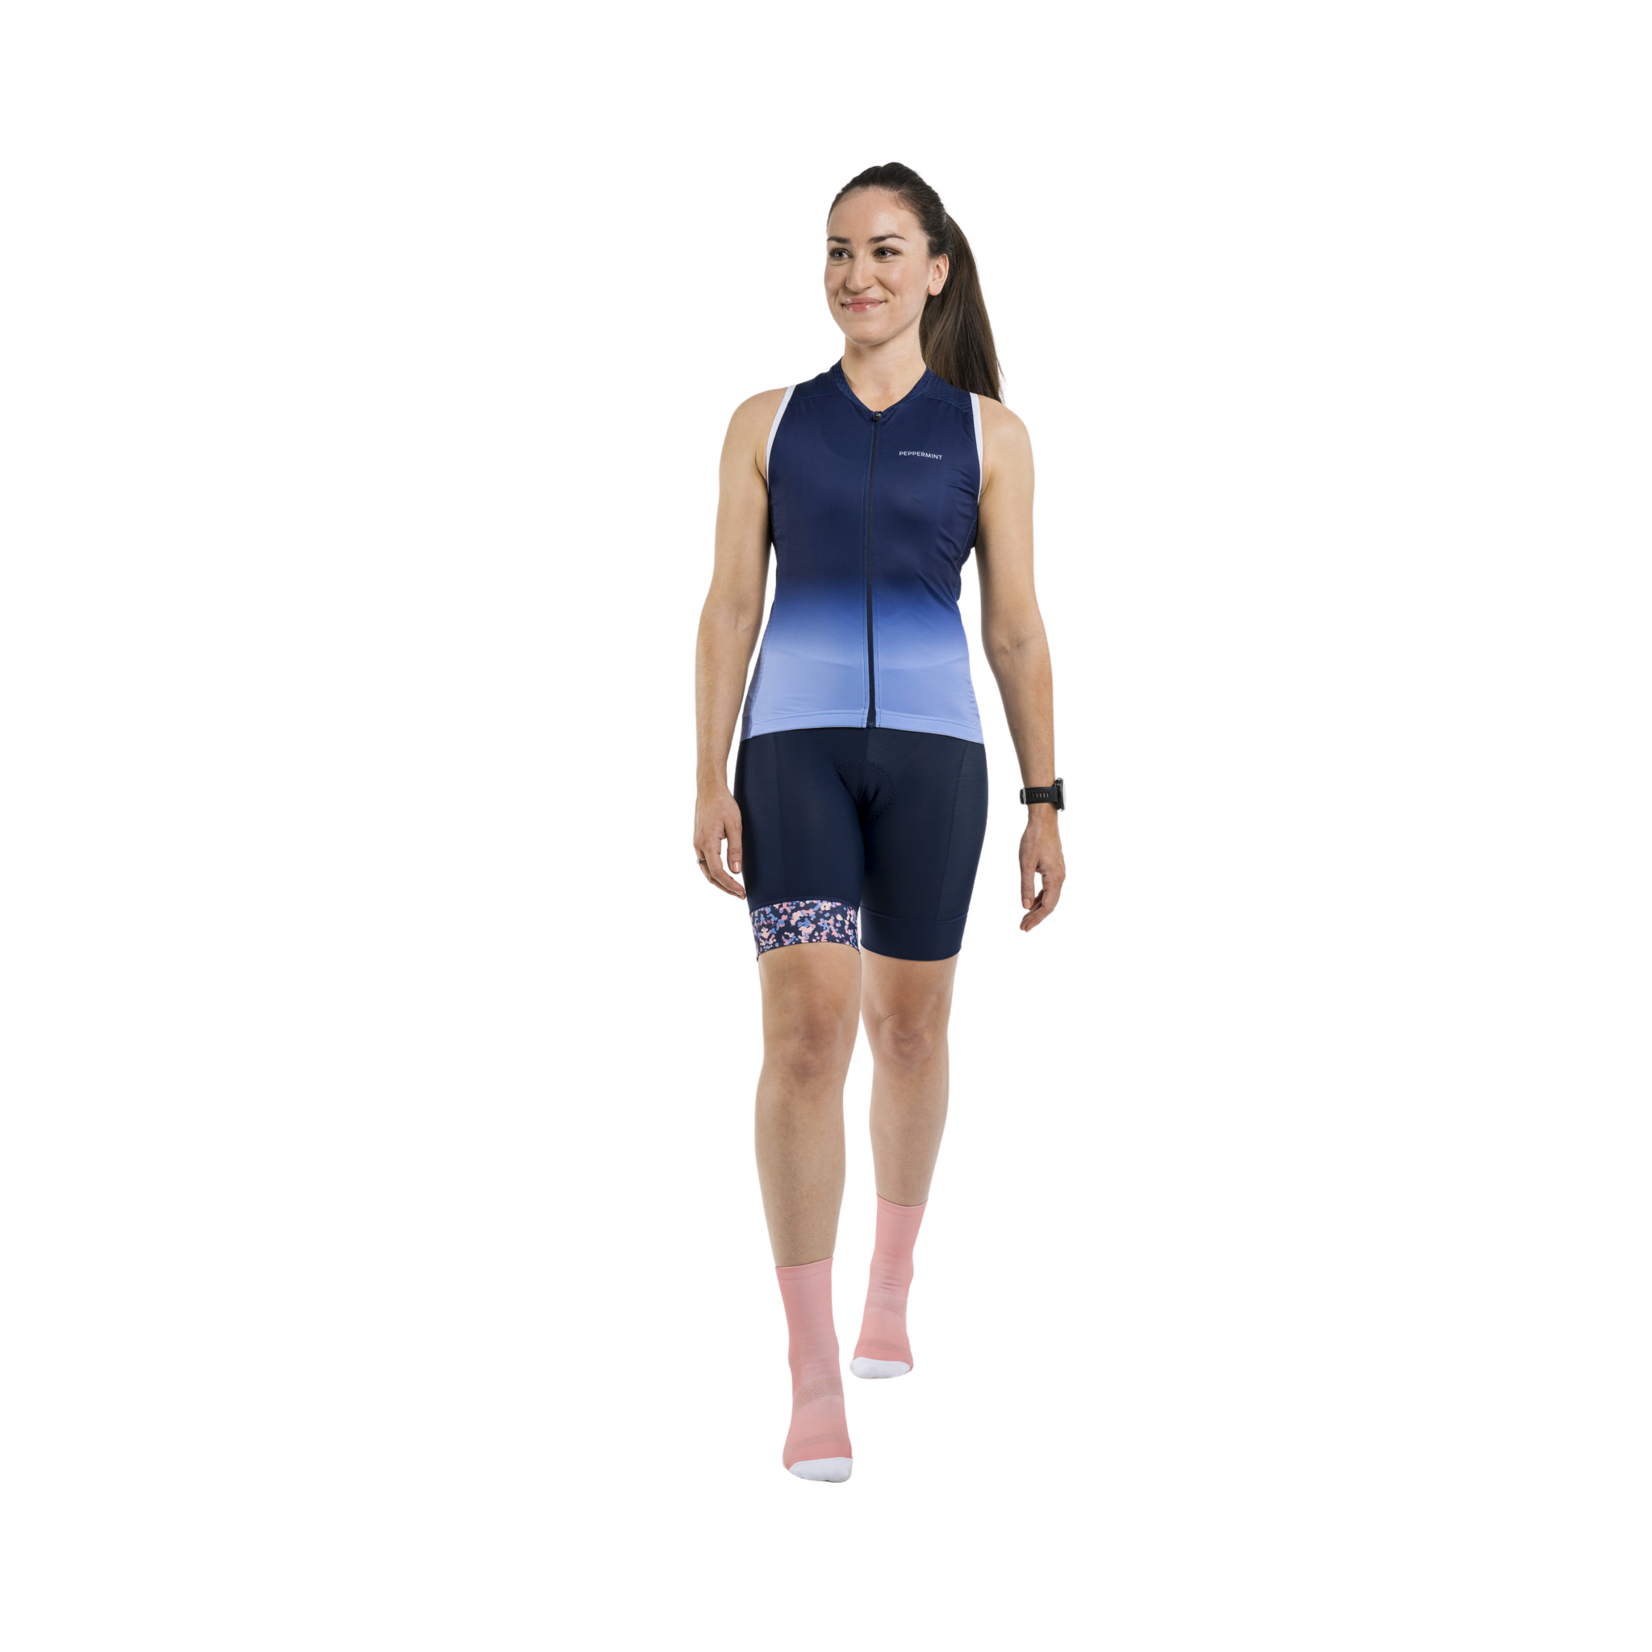 Peppermint Peppermint Signature Sleeveless Jersey Women's